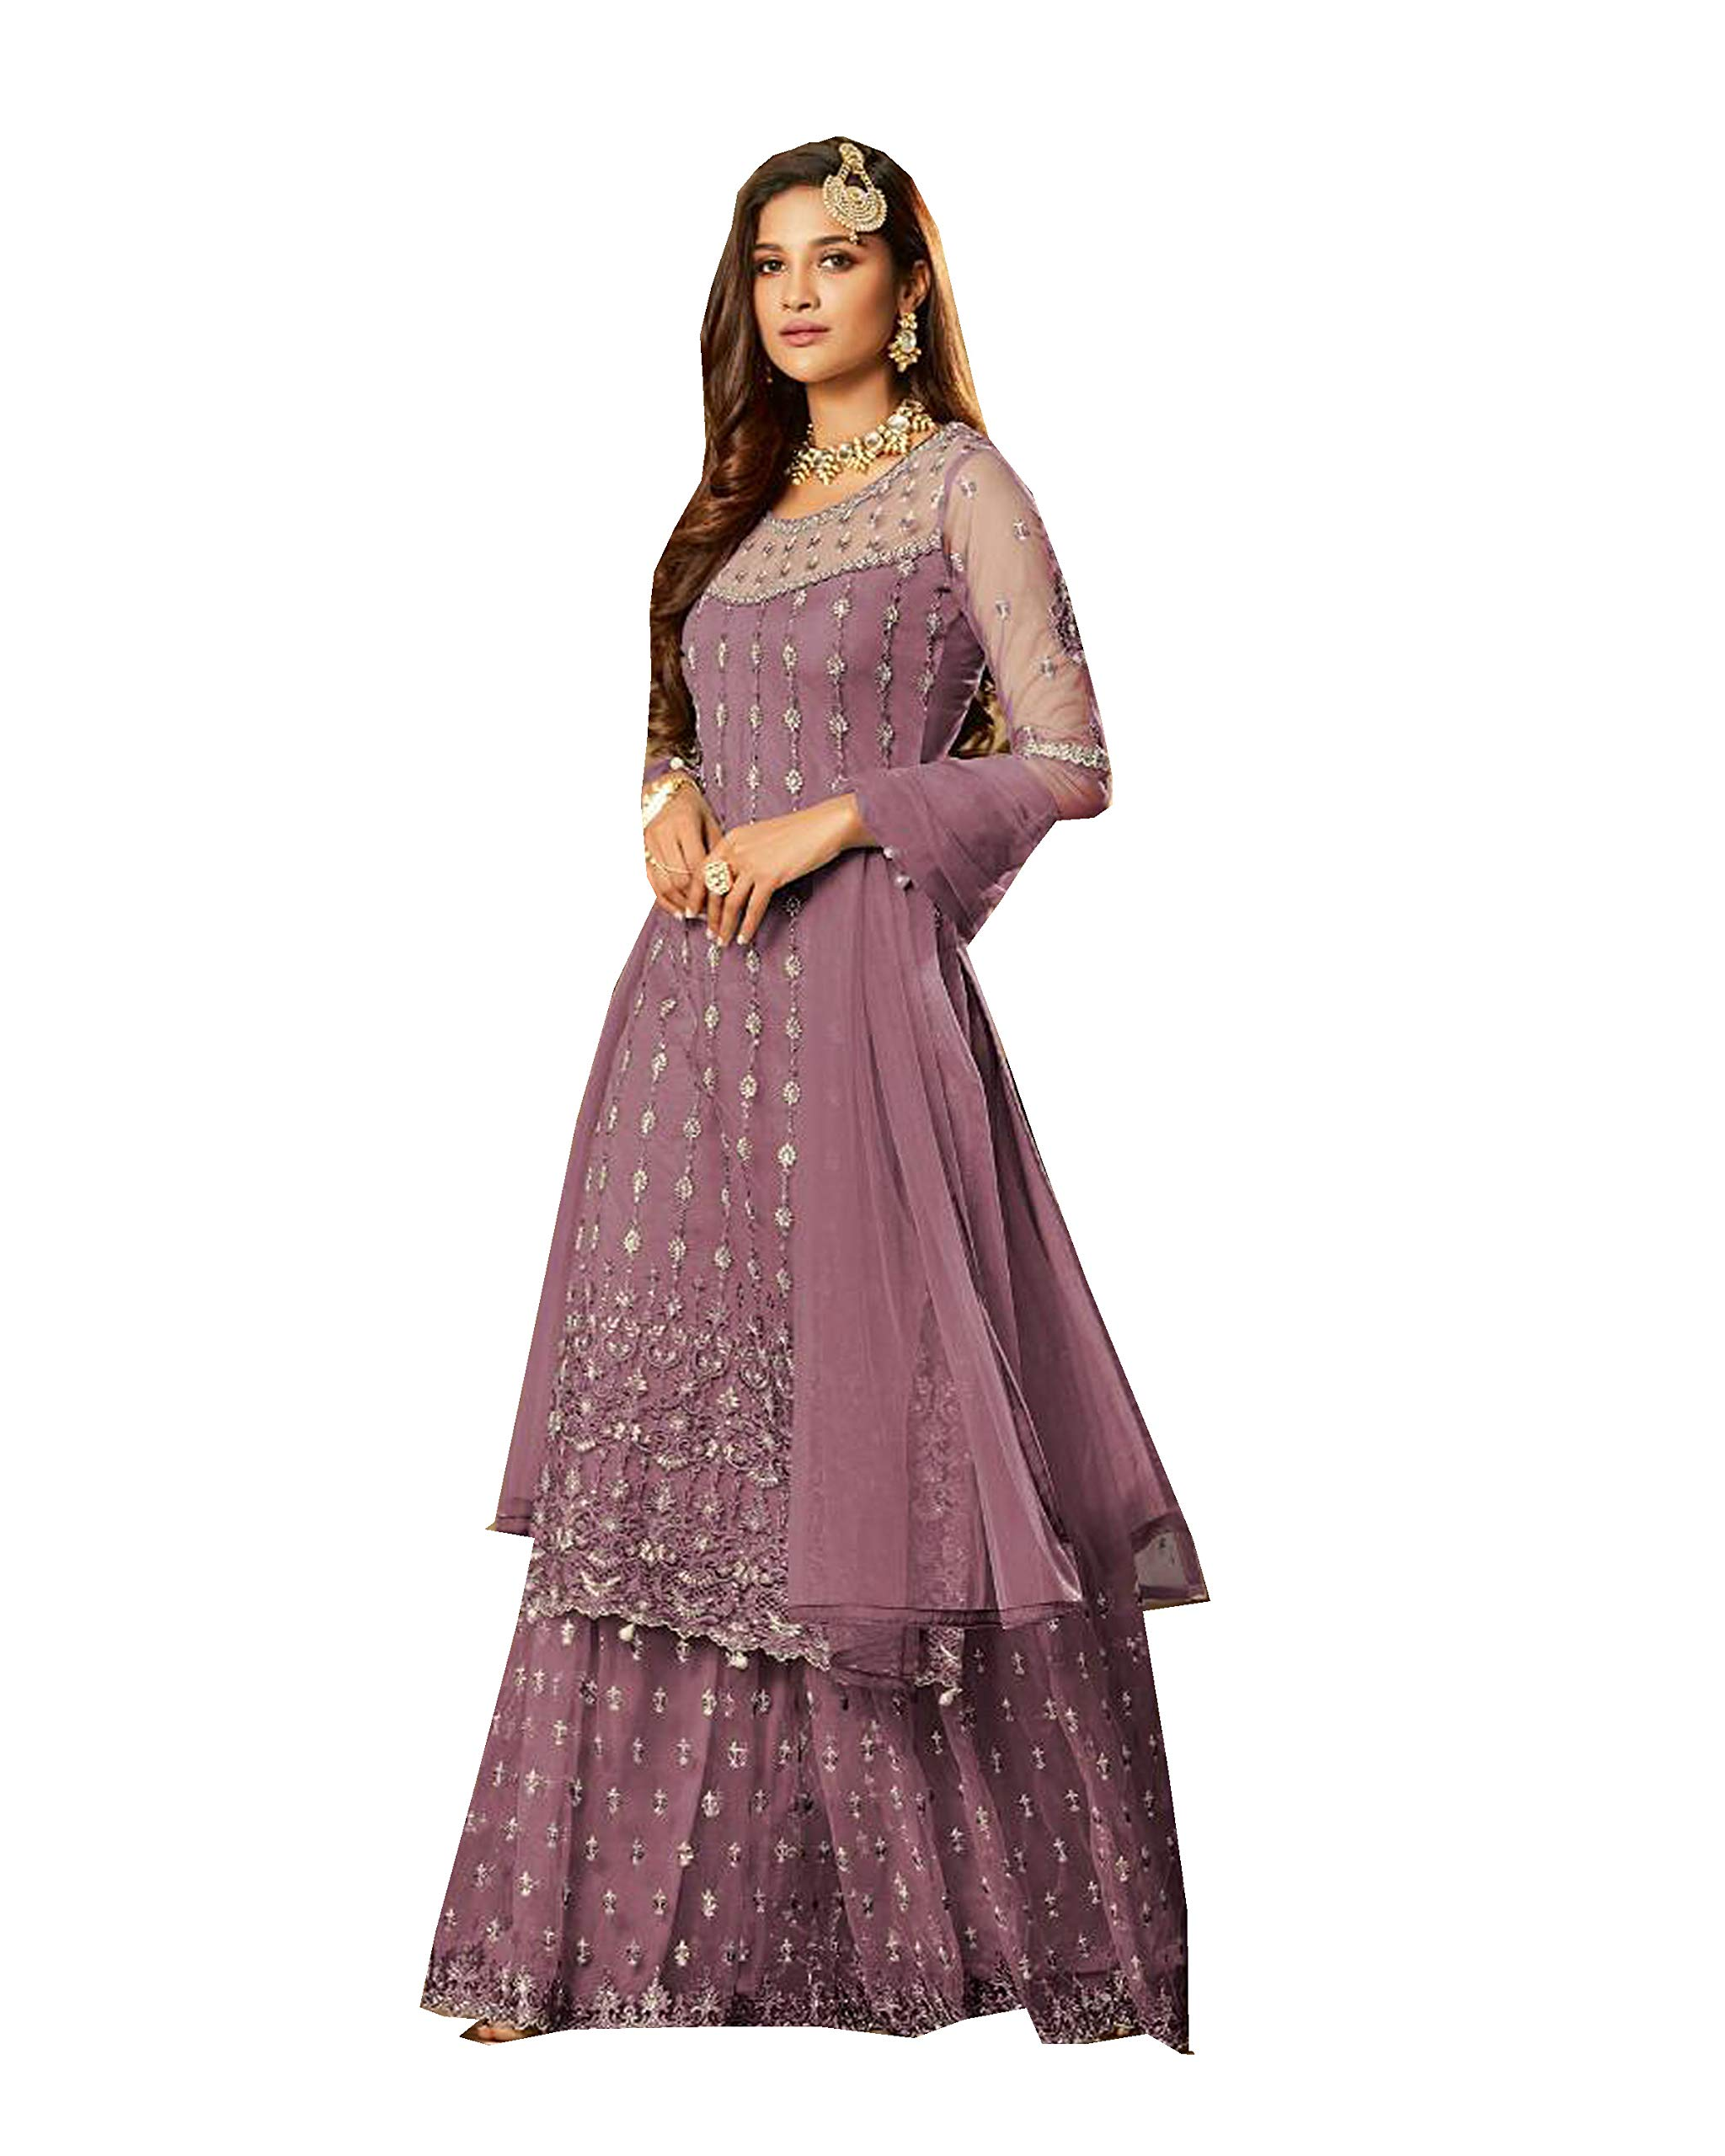 Delisa Bollywood Ghagra Style Salwar Kameez Party Wear/Ethnic wear for Women 57002 (Purple, XL-44)